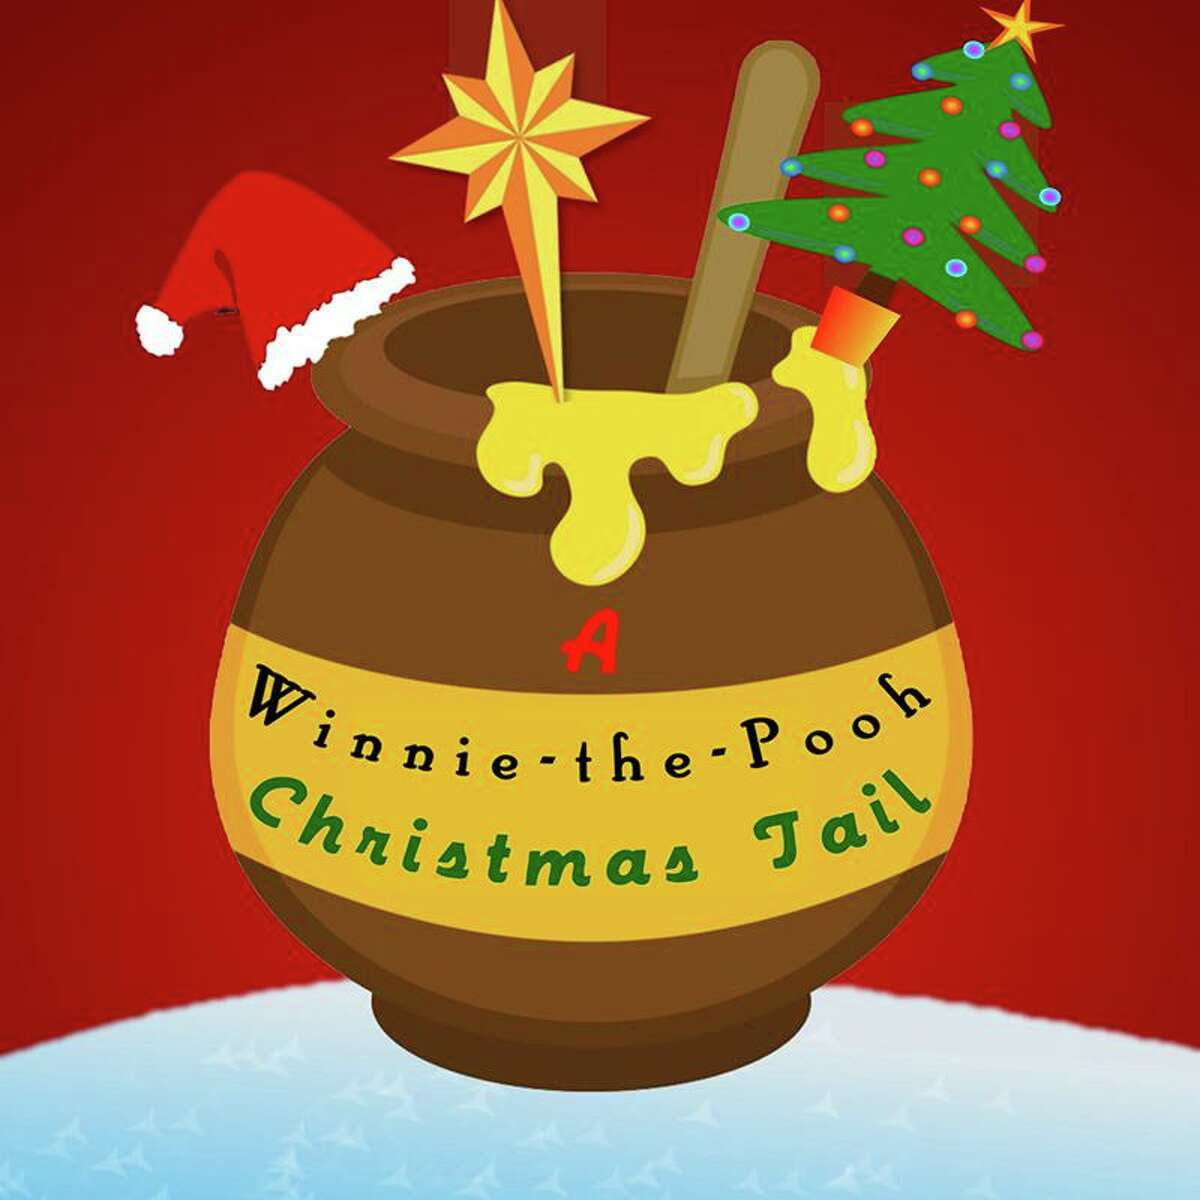 """""""A Winnie-the-Pooh Christmas Tail"""" is coming to White Plains Performing Arts Center Stage 2 for two performances on November 29 at 11 a.m. and 2 p.m."""